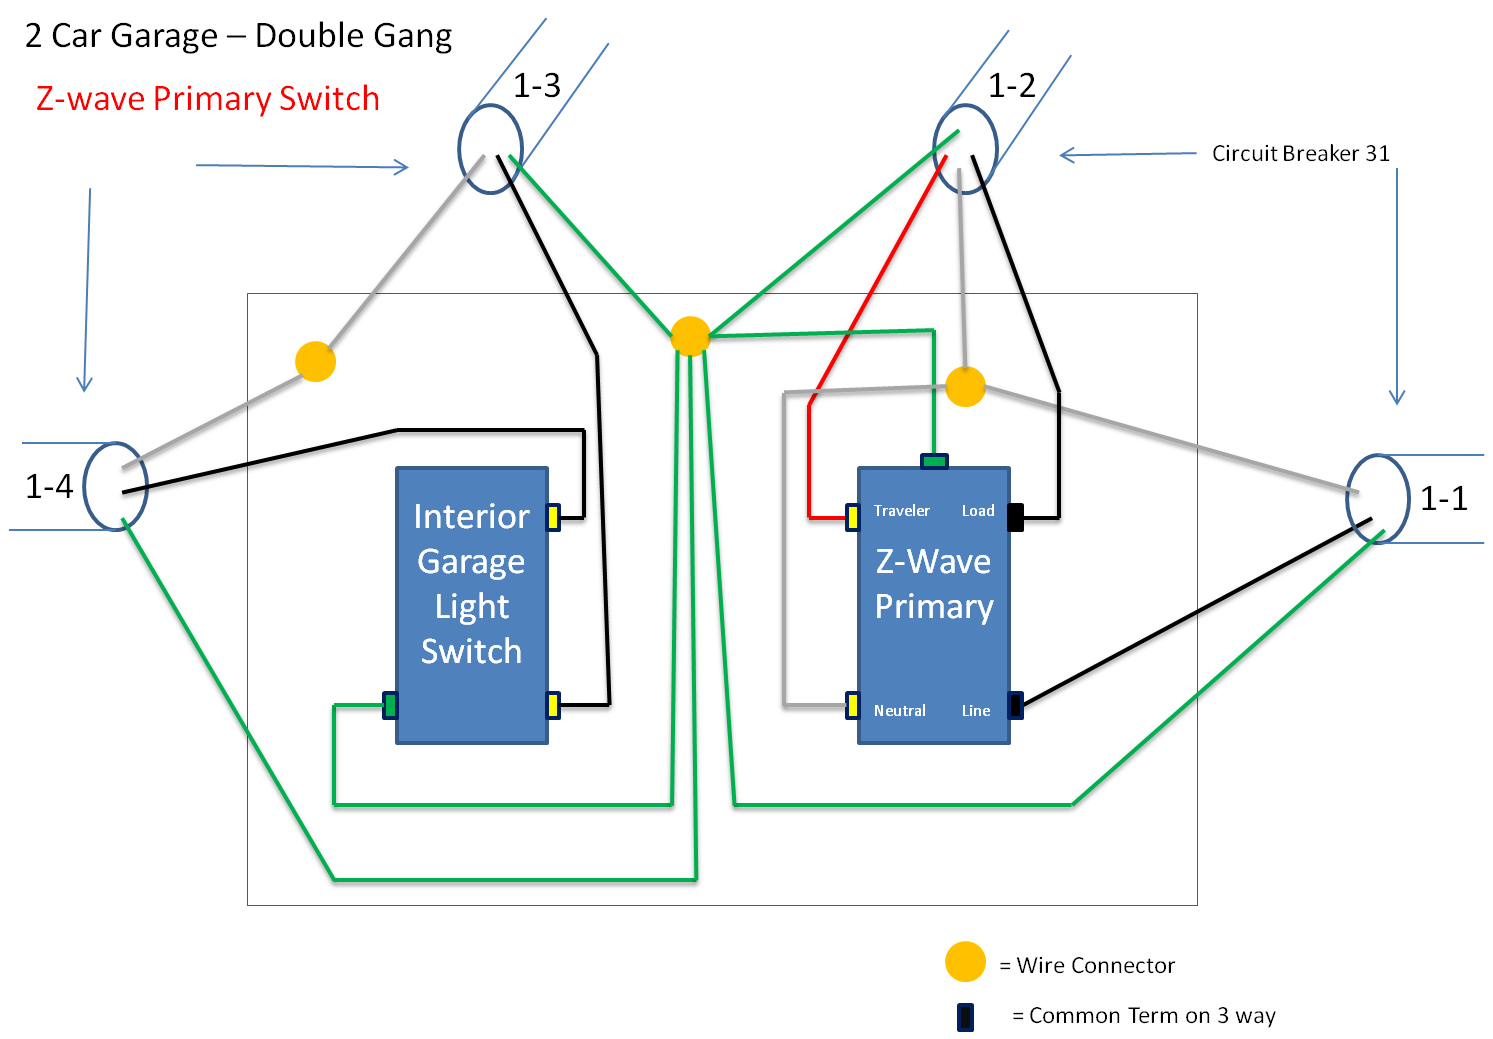 Wiring 3 Way Z Wave Diagram Schemes Multiple Lights Trying To Wire In A Ge 45614 Light Switch Kit Home Is Rh Justanswer Com Methods